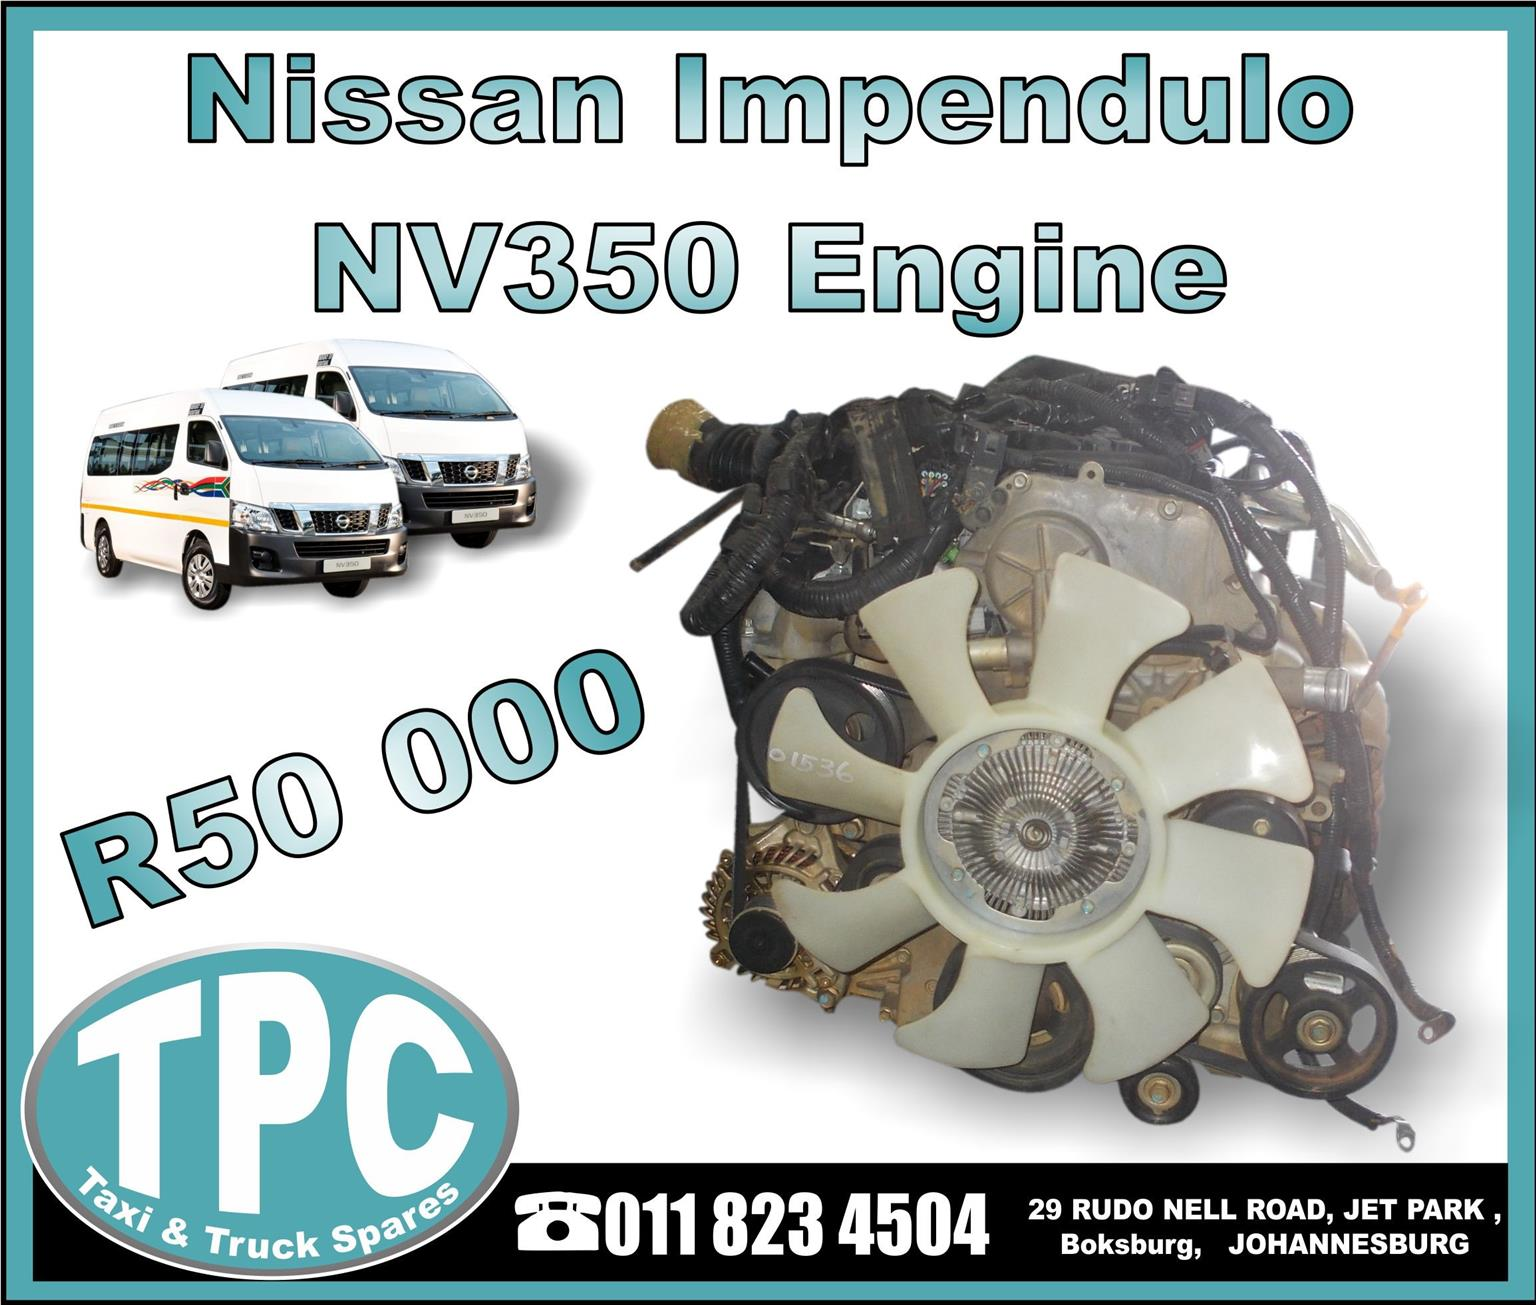 Nissan Impendulo NV350 Engine - Used Replacement Parts.